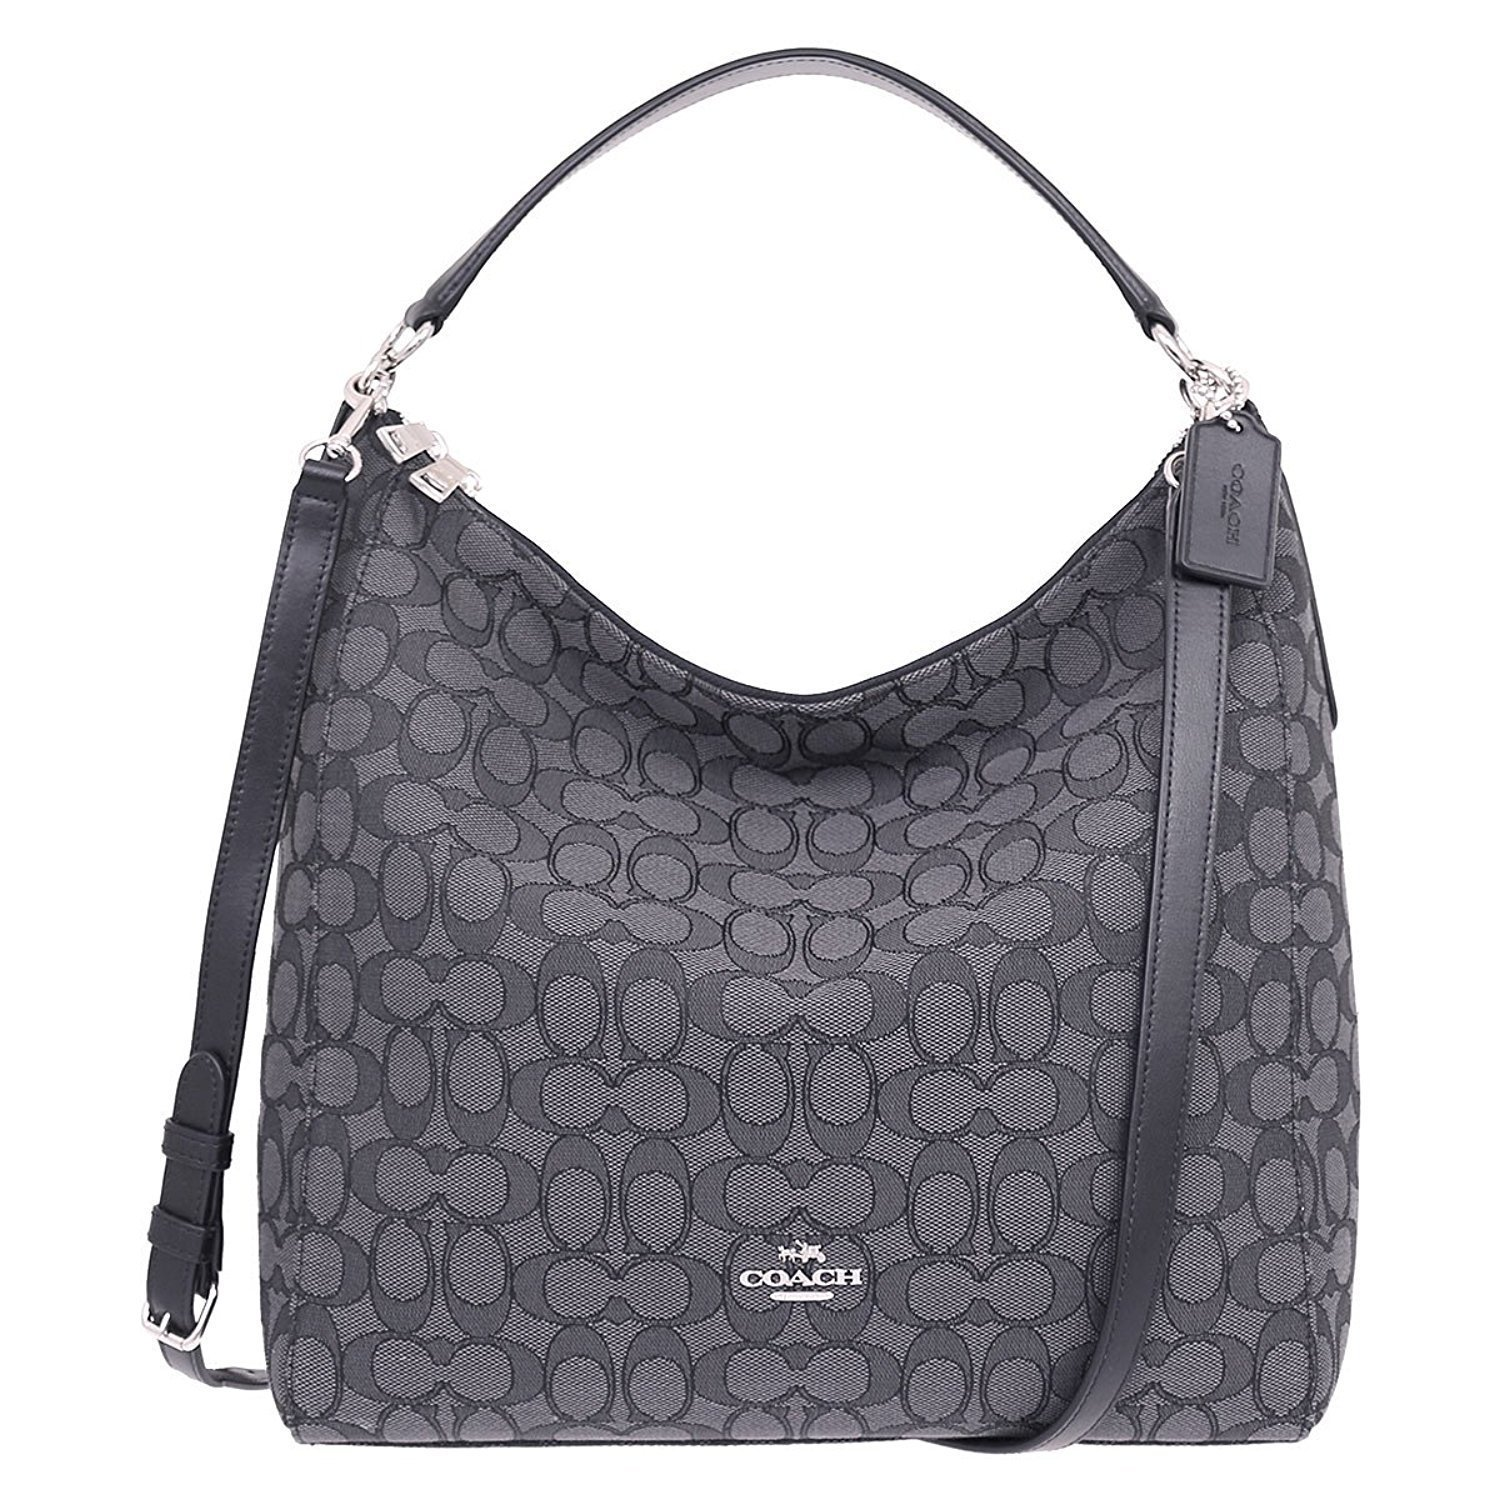 9dae03fc67 Coach Outline Signature Celeste Hobo Shoulder Crossbody Bag Purse Handbag   Amazon.ca  Luggage   Bags